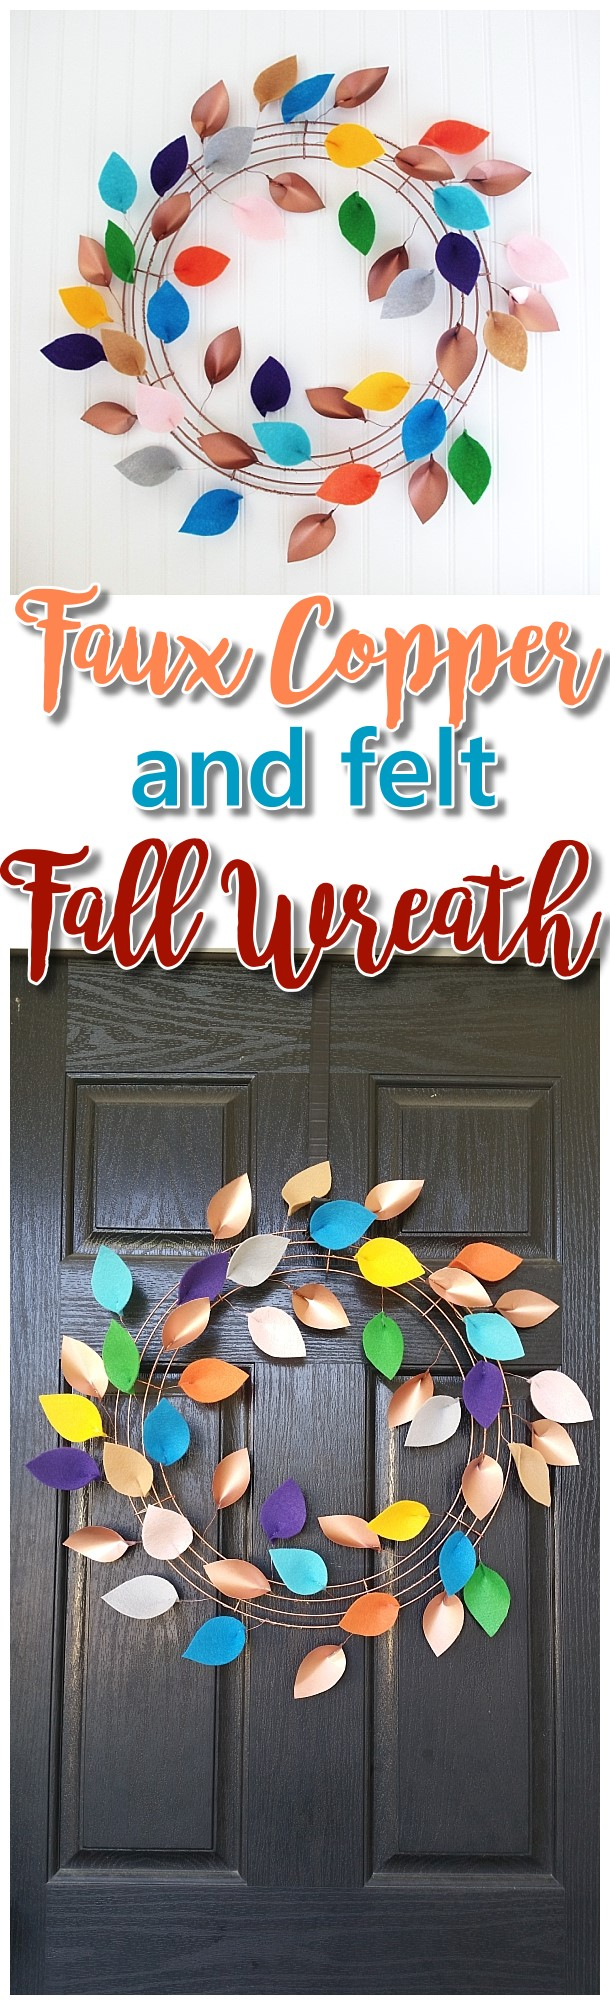 DIY Faux Copper and Felt Leaves Fall Wreath Decoration Tutorial - Pretty Indoor or Outdoor Do it Yourself Paper Crafts Project Autumn Wreath Easy Decoration by Dreaming in DIY